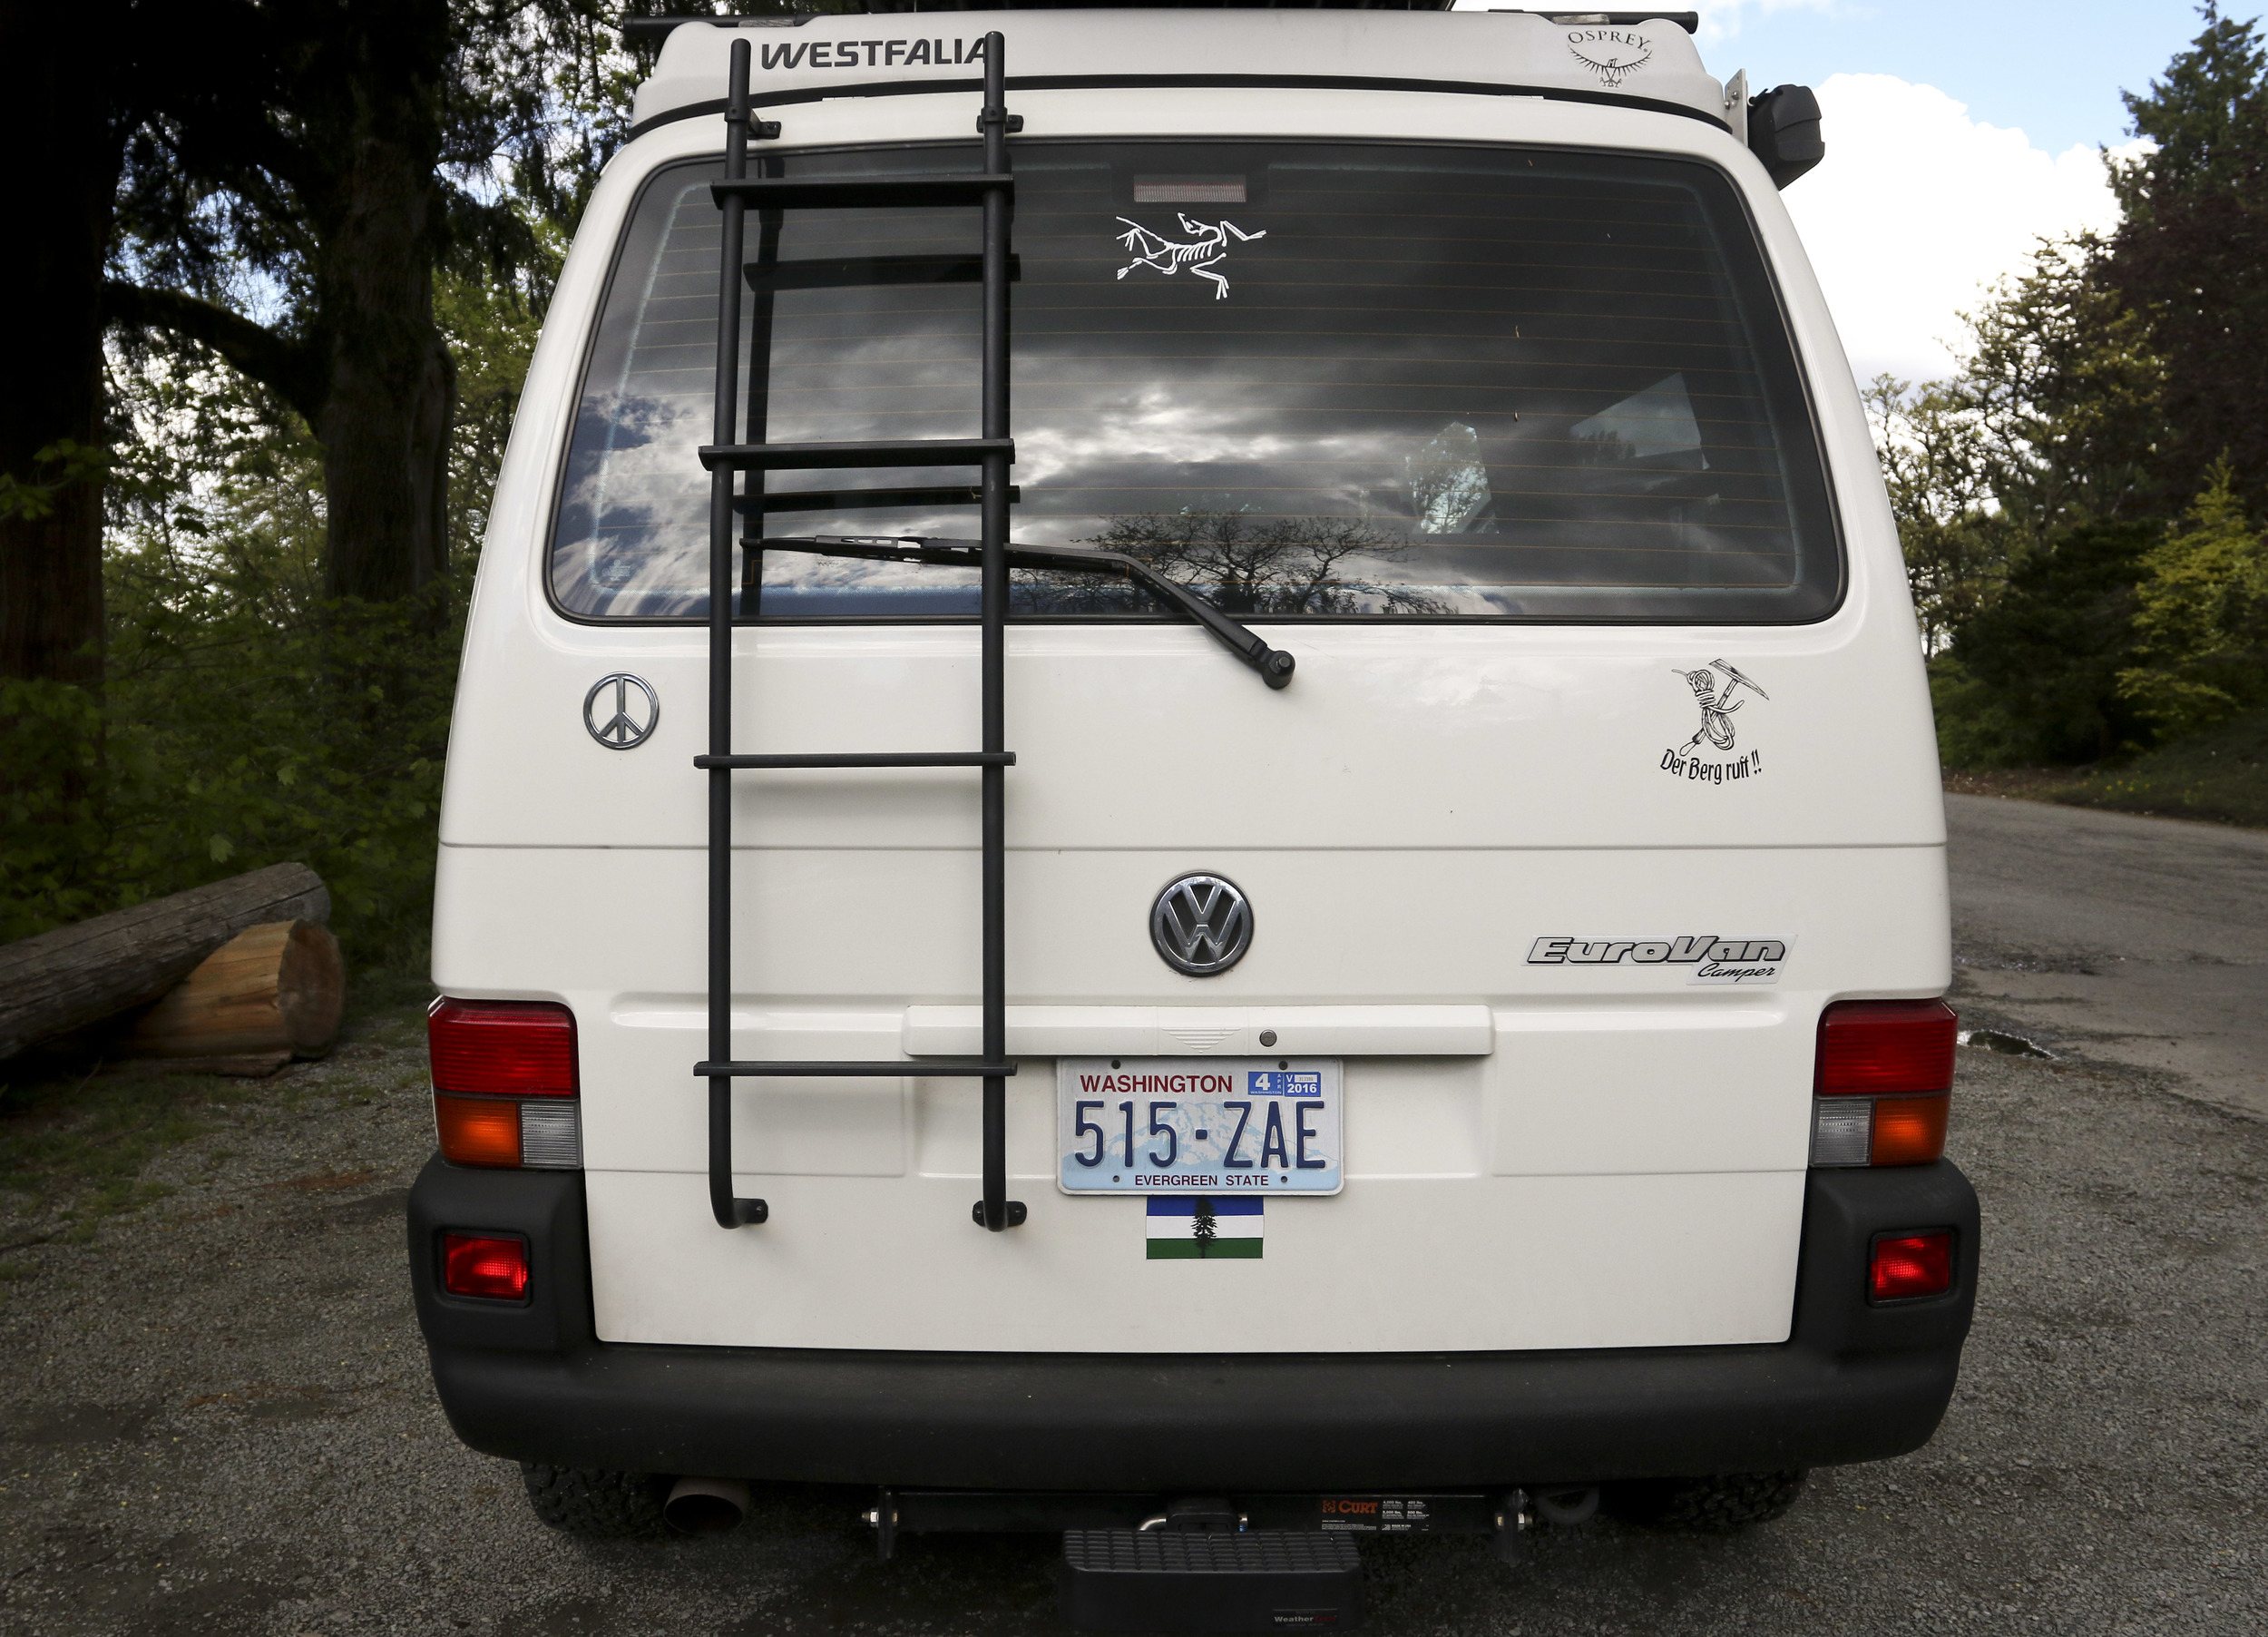 The custom ladder was made locally in Leavenworth, WA allowing easy access to the roof.    The trailer hitch features a step that is useful for climbing the ladder or closing the hatch back.